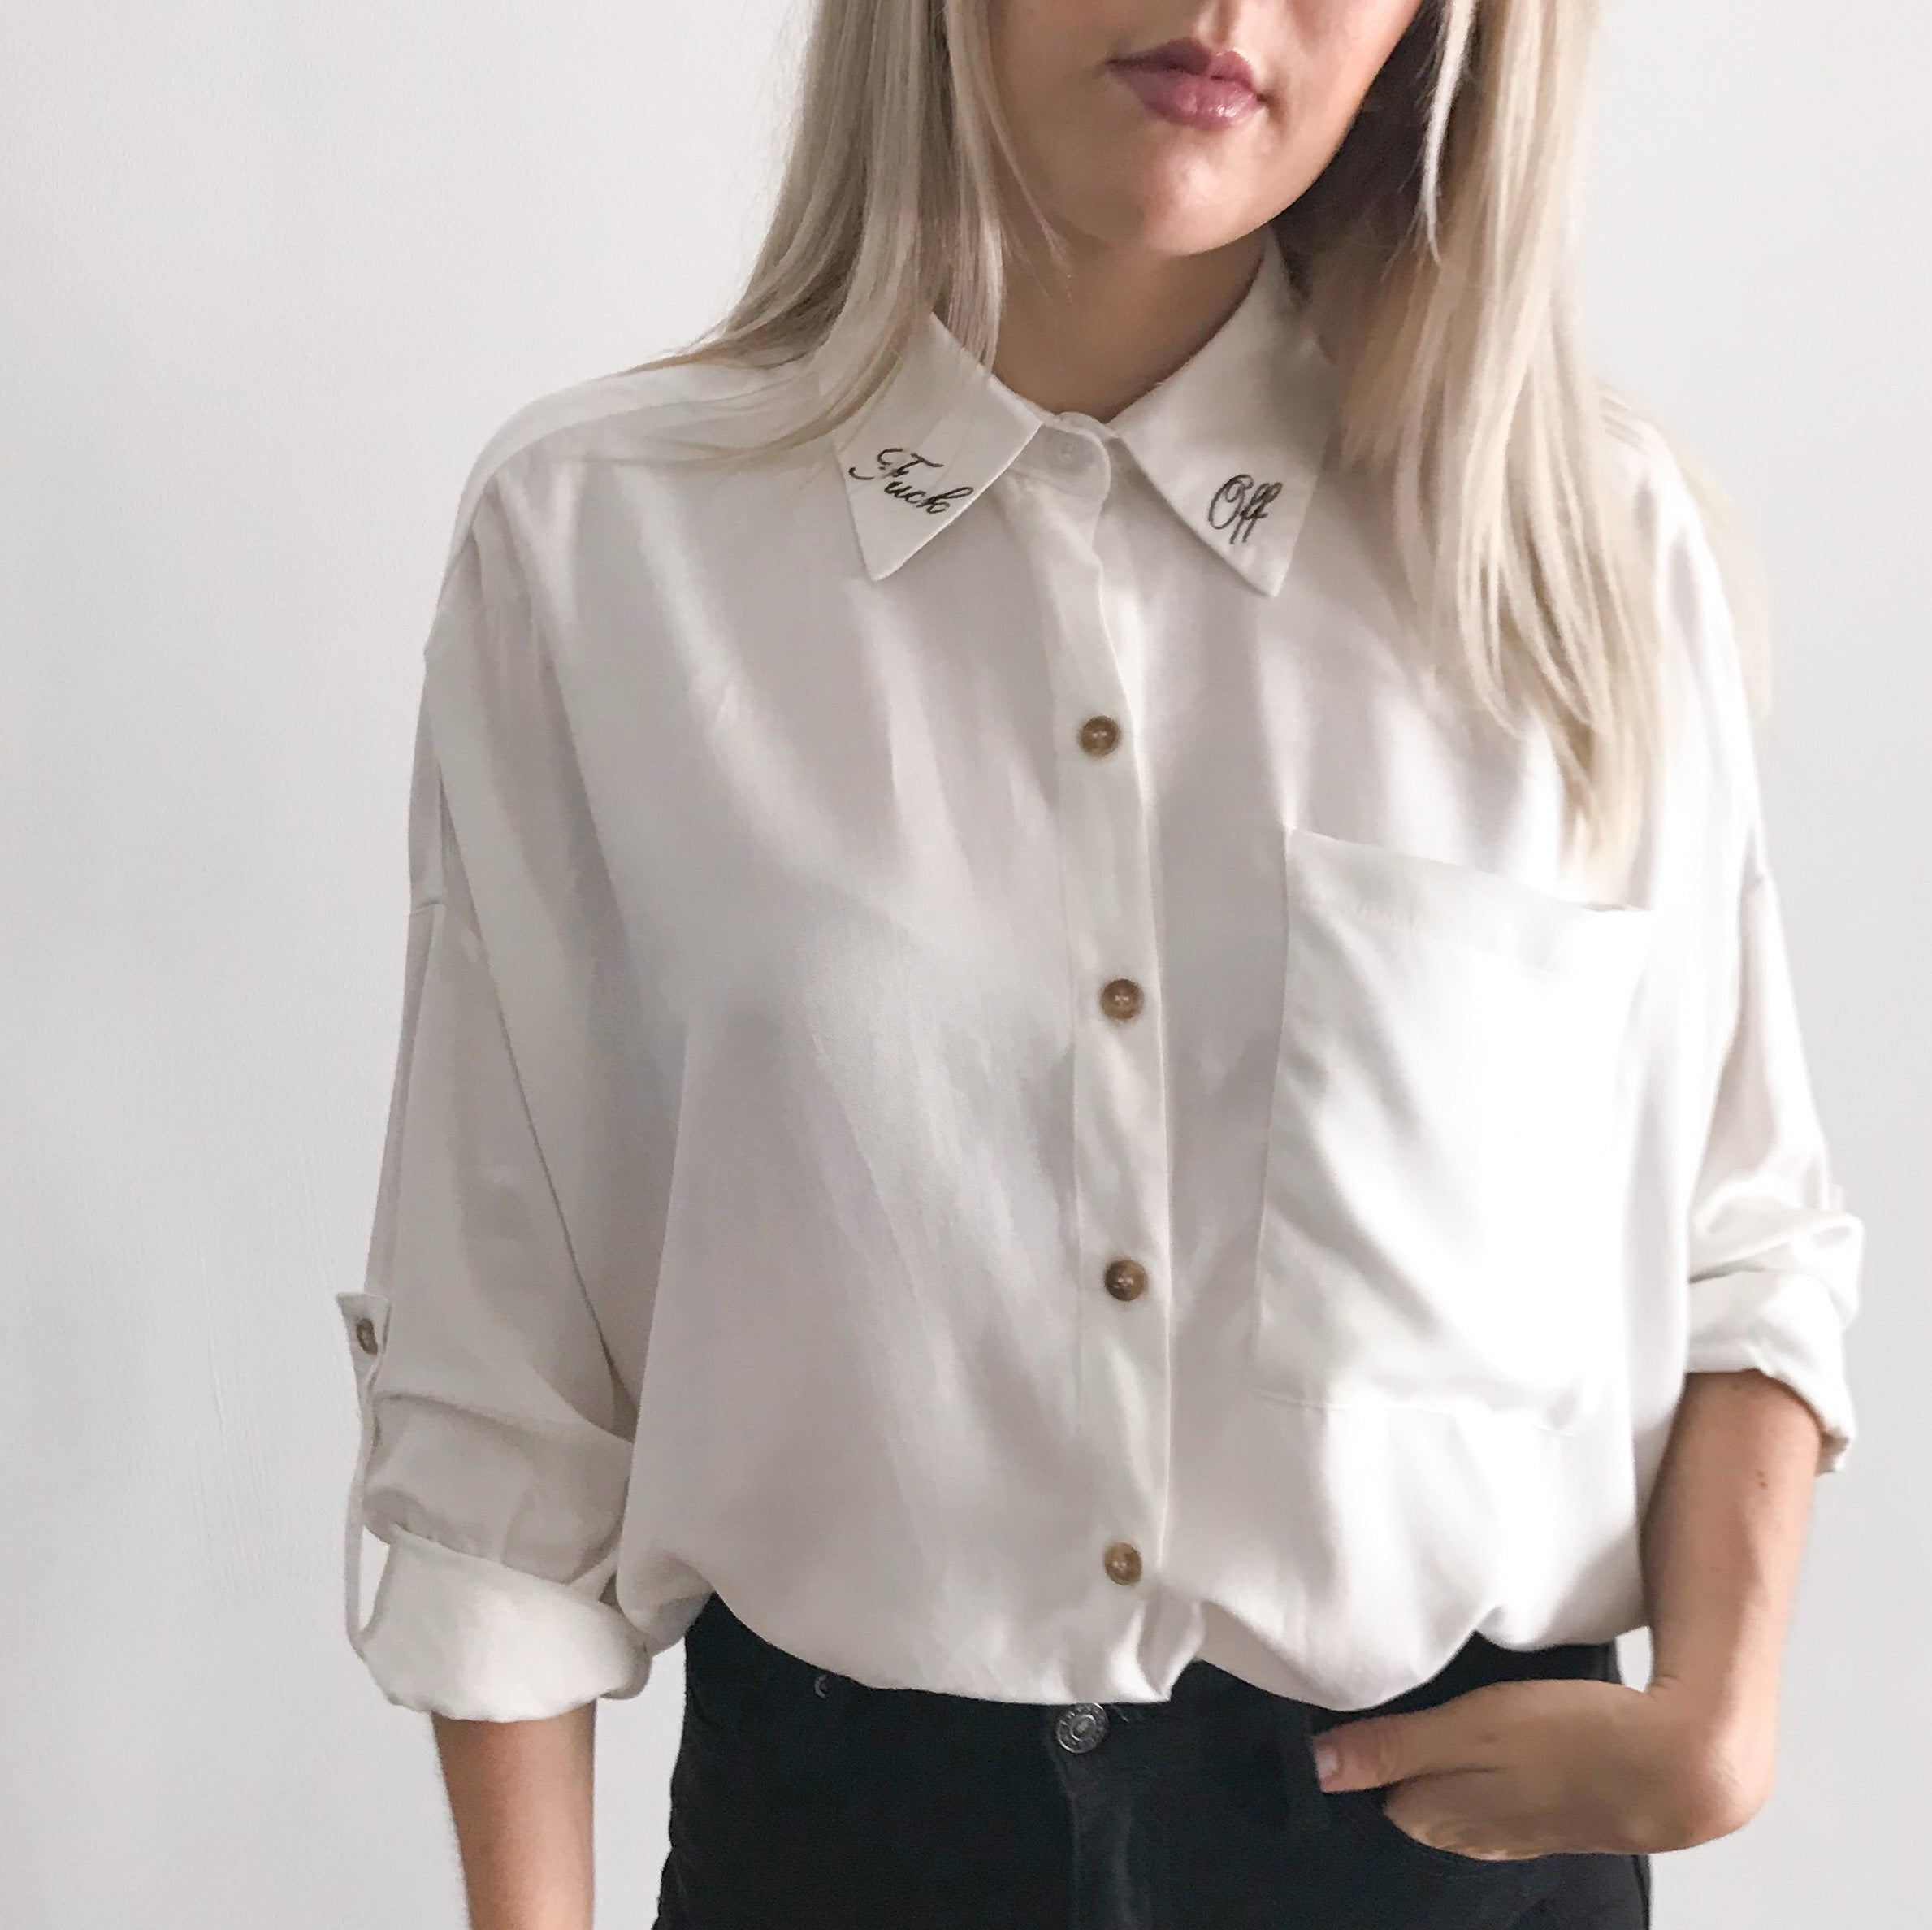 F*ck Off Embroidered Collar Shirt